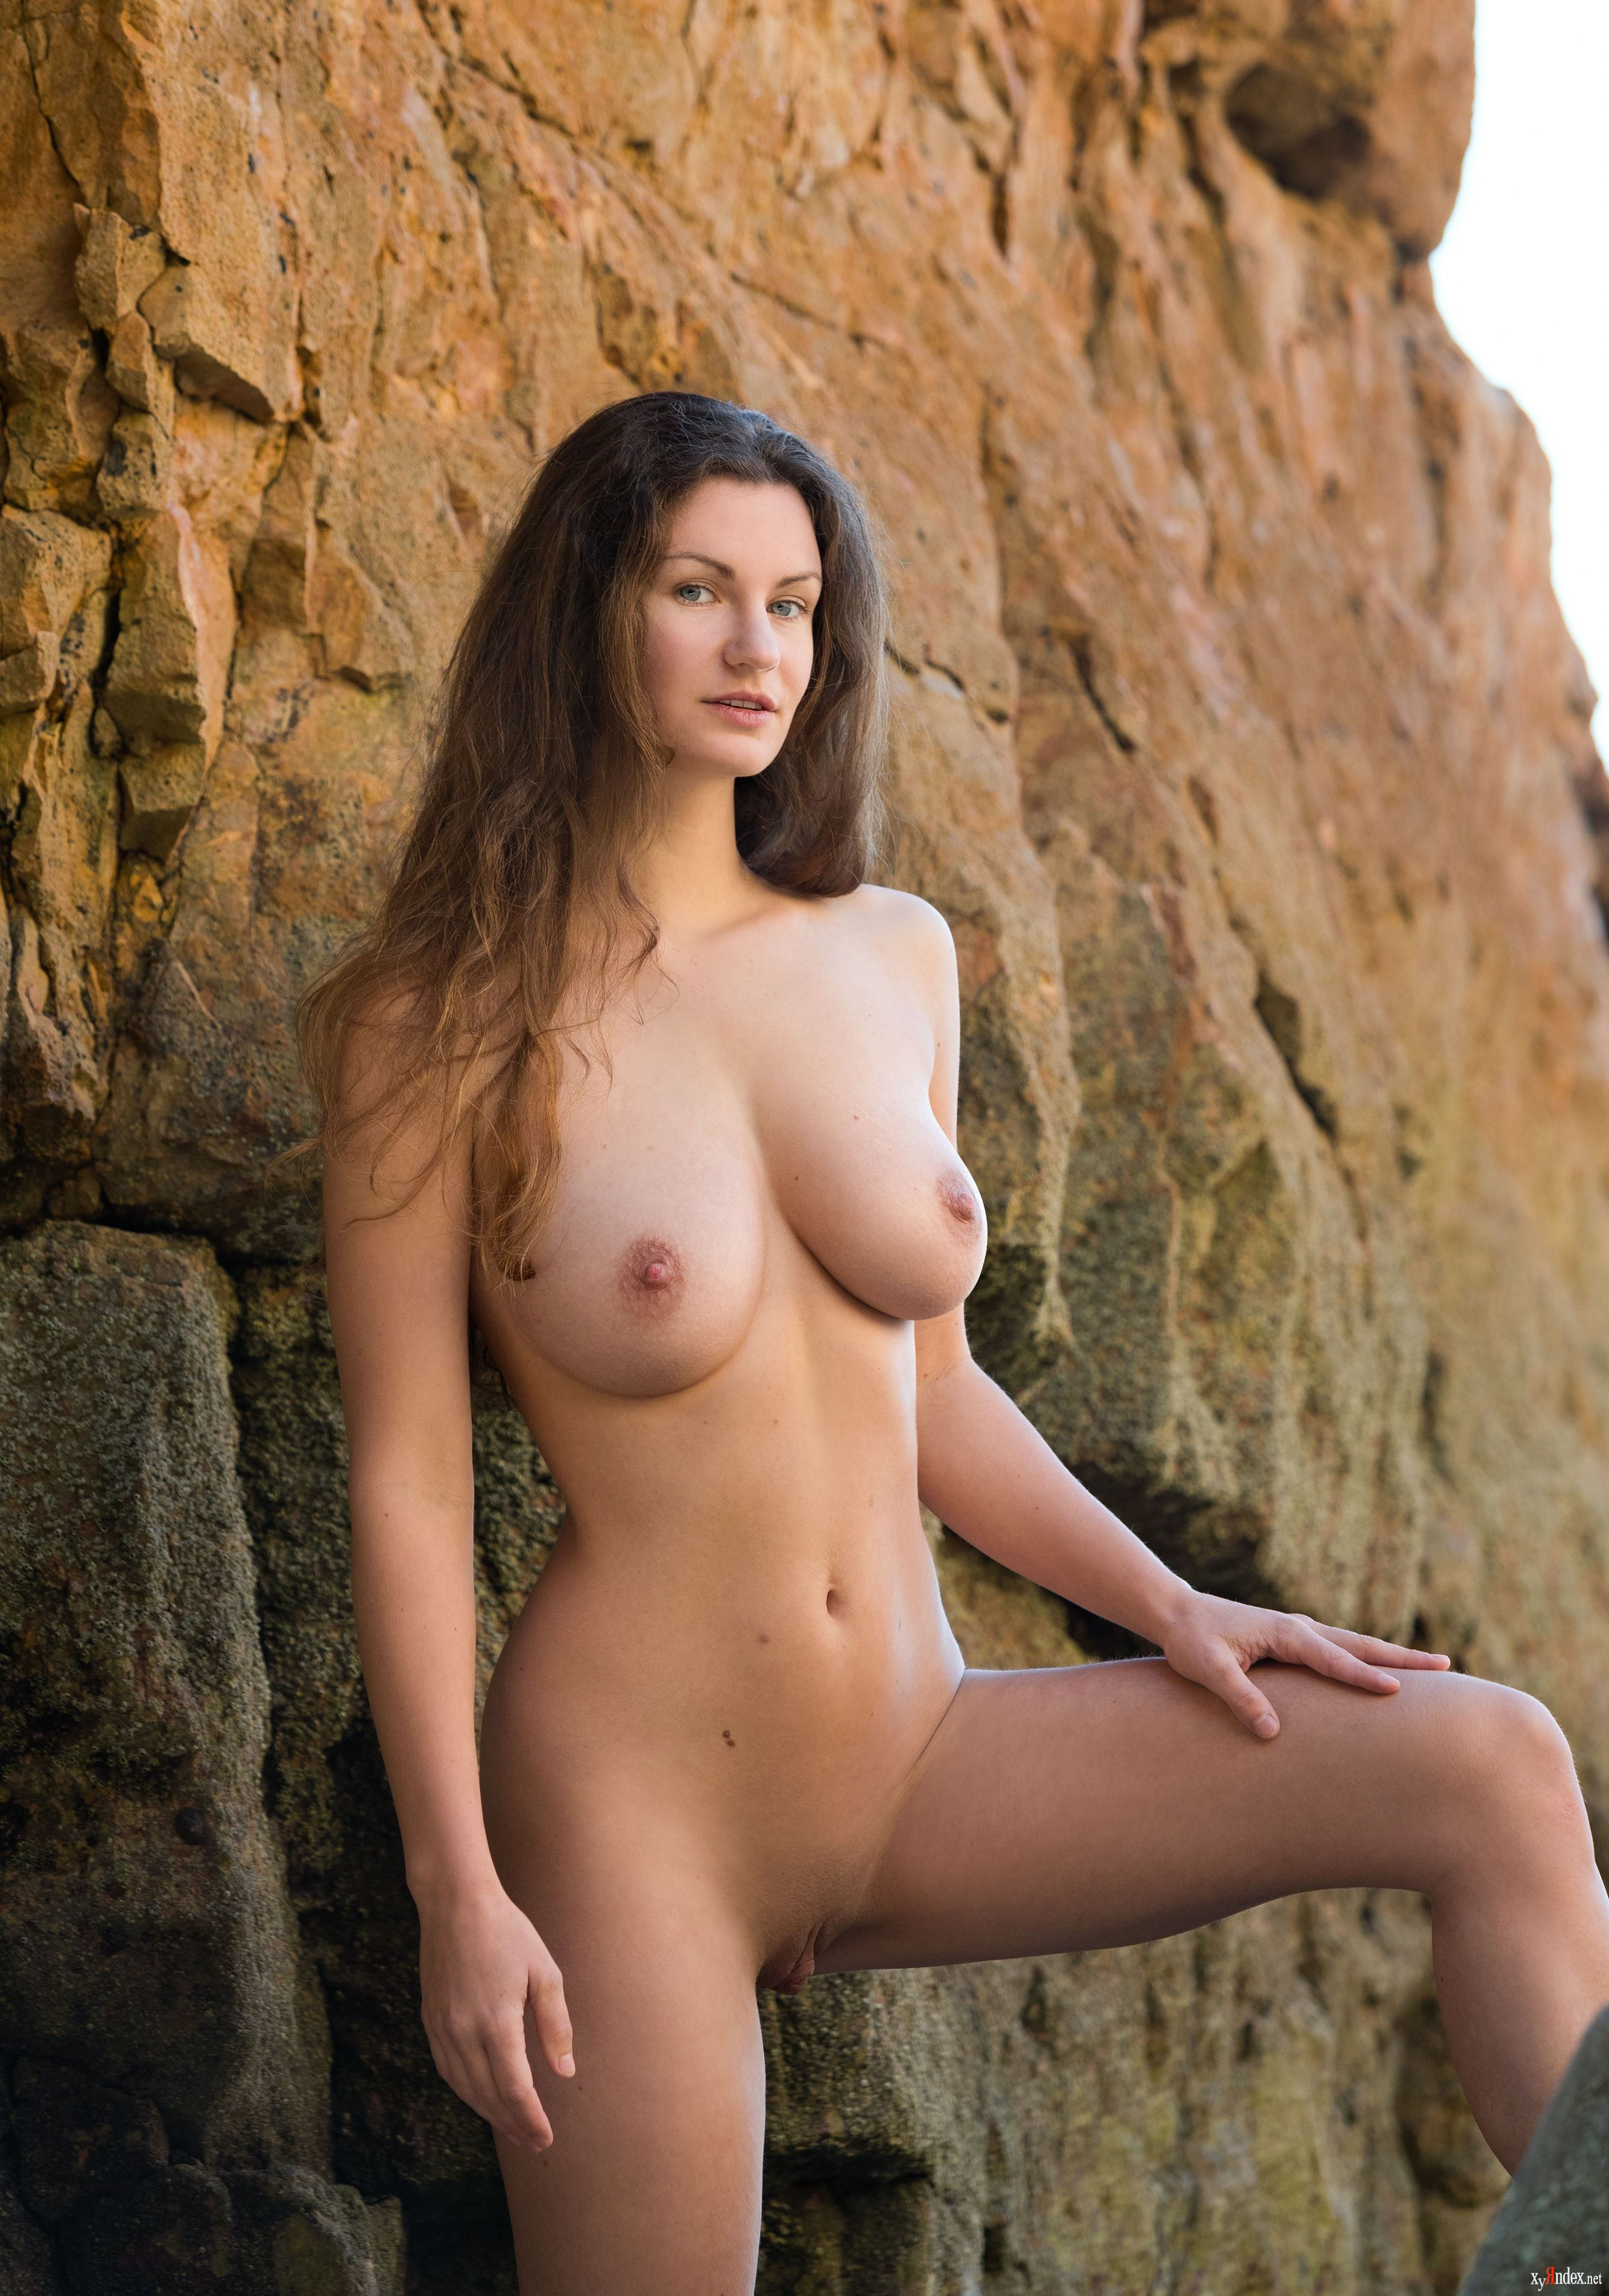 Susann summers in the nude 10